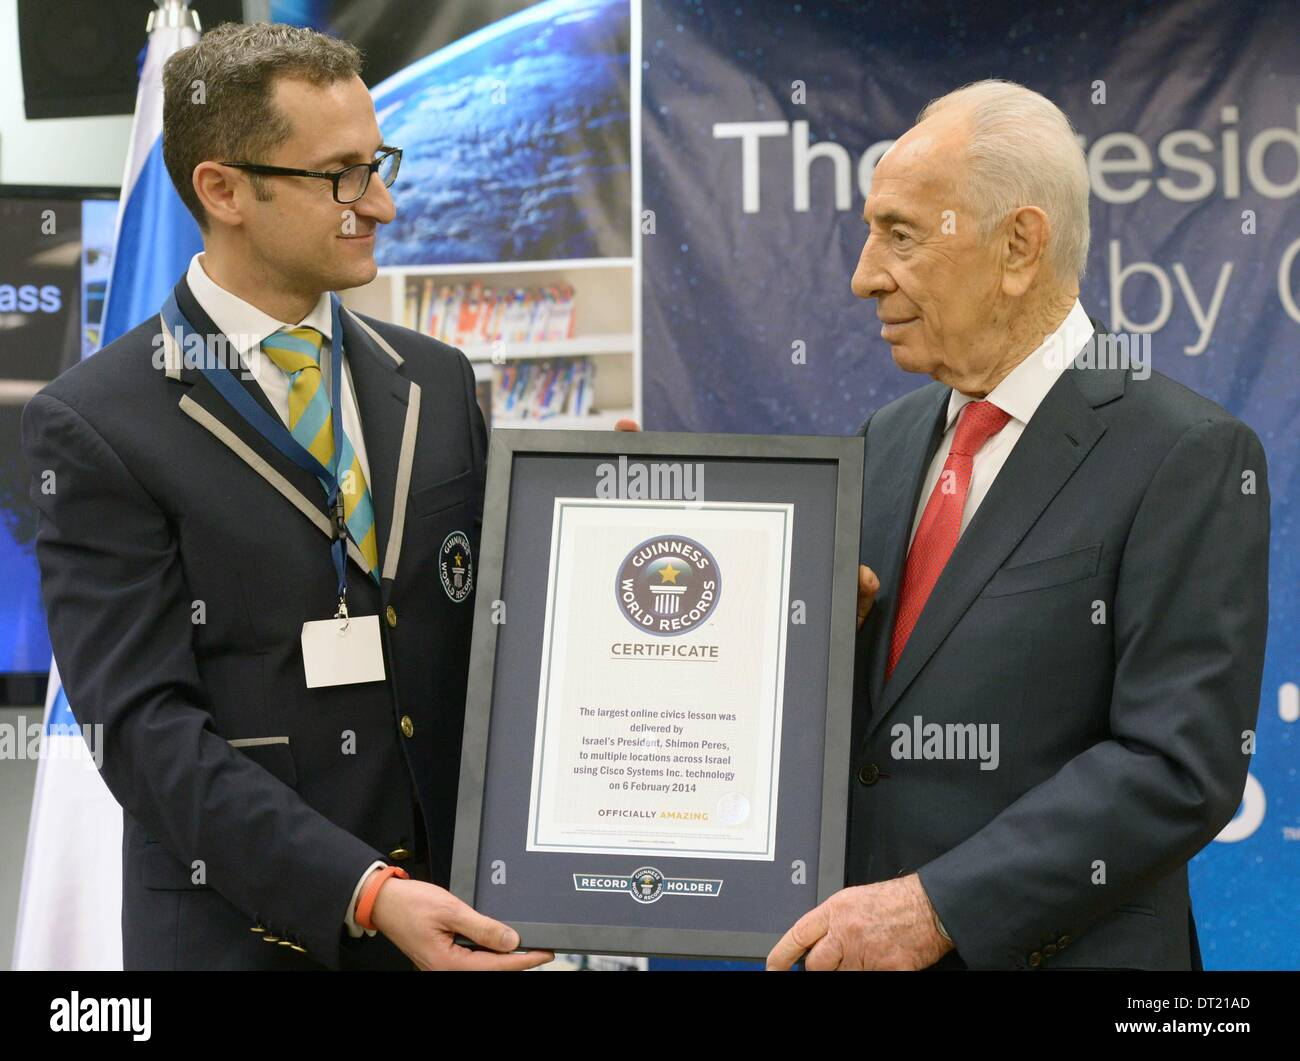 (140206) -- NETANYA (ISRAEL), Feb. 6, 2014 (Xinhua) -- Israeli President Shimon Peres (R) receives a certificate of the Guinness World Record for the largest online civics lesson from Guinness World Records Senior Vice President Marco Frigatti (L) in the Cisco headquarters in Netanya, Israel, on Feb. 6, 2014. Peres and over 9000 high school students across Israel, using Cisco Systems Telepresence technology, broke the Guinness World Record for the largest online civics lesson. Over 8500 students heard Peres live and some had the opportunity to ask him questions. (Xinhua/GPO/Mark Neyman) - Stock Image